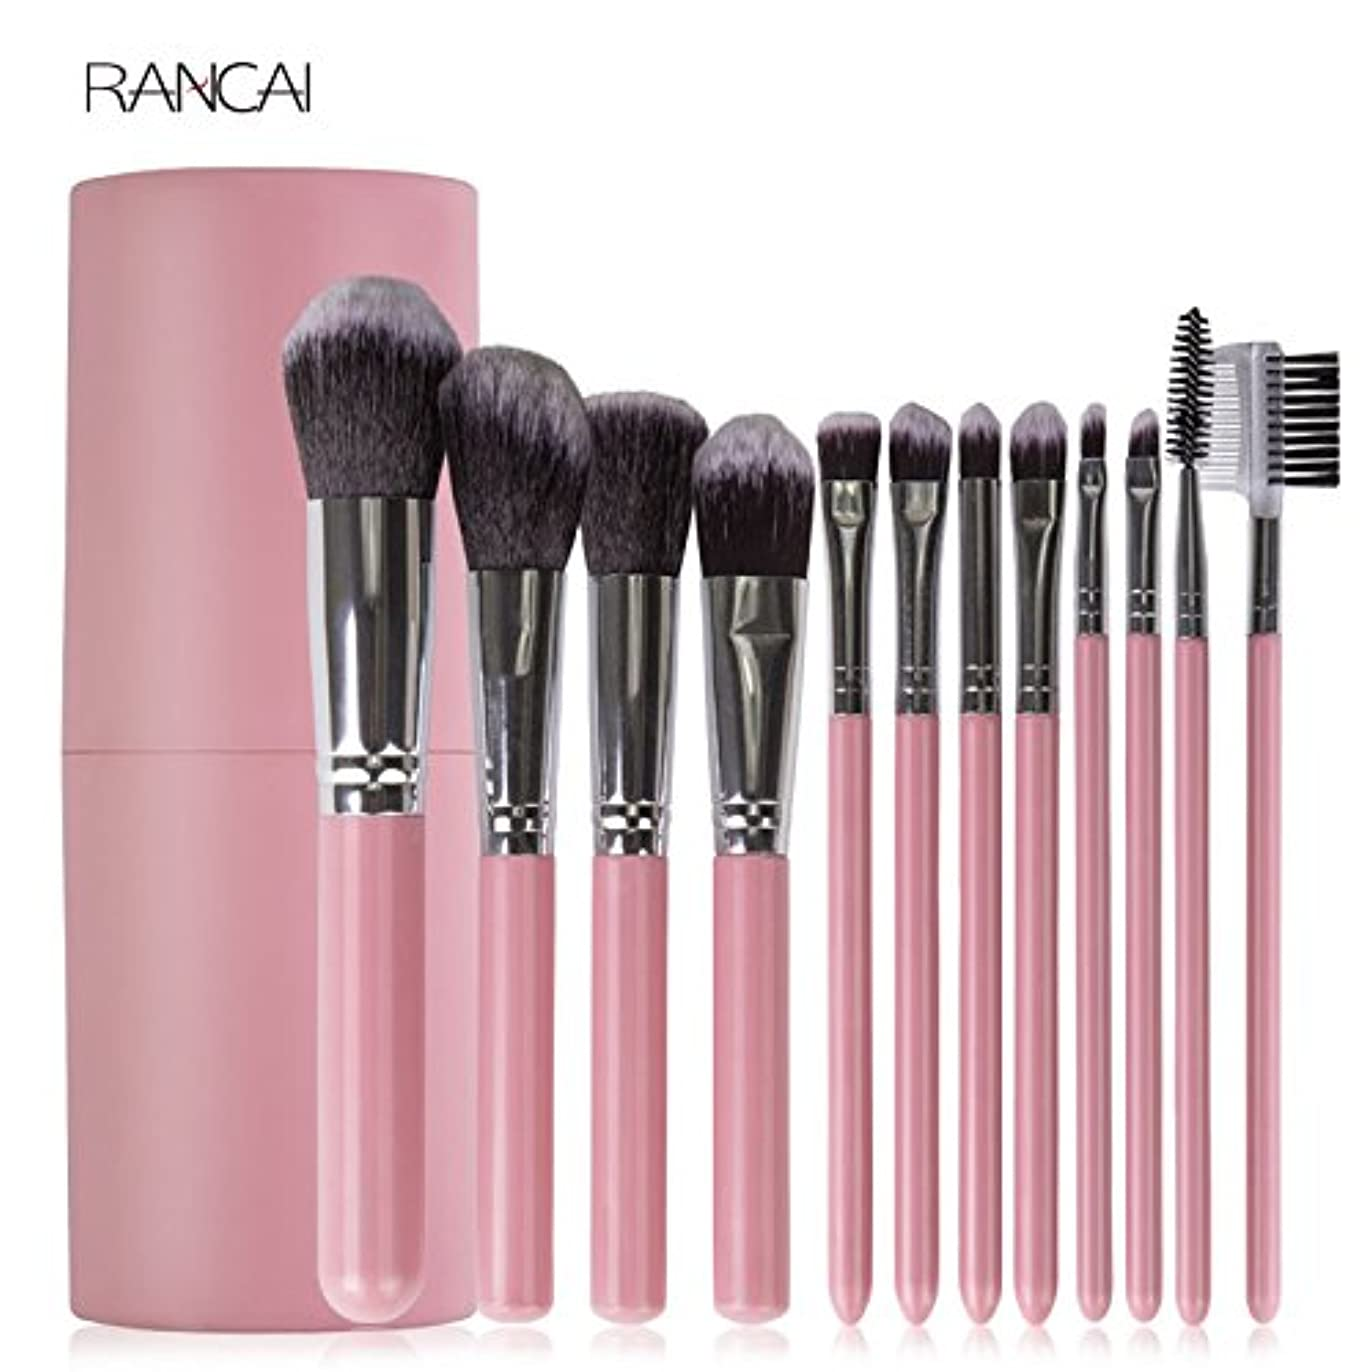 オーディションうまれた無一文12pcs Pink Makeup Brushes Set Face Powder Foundation Contour Blush Eyebrow Brush & Comb Pincel Maquiagem with Cylinder Case